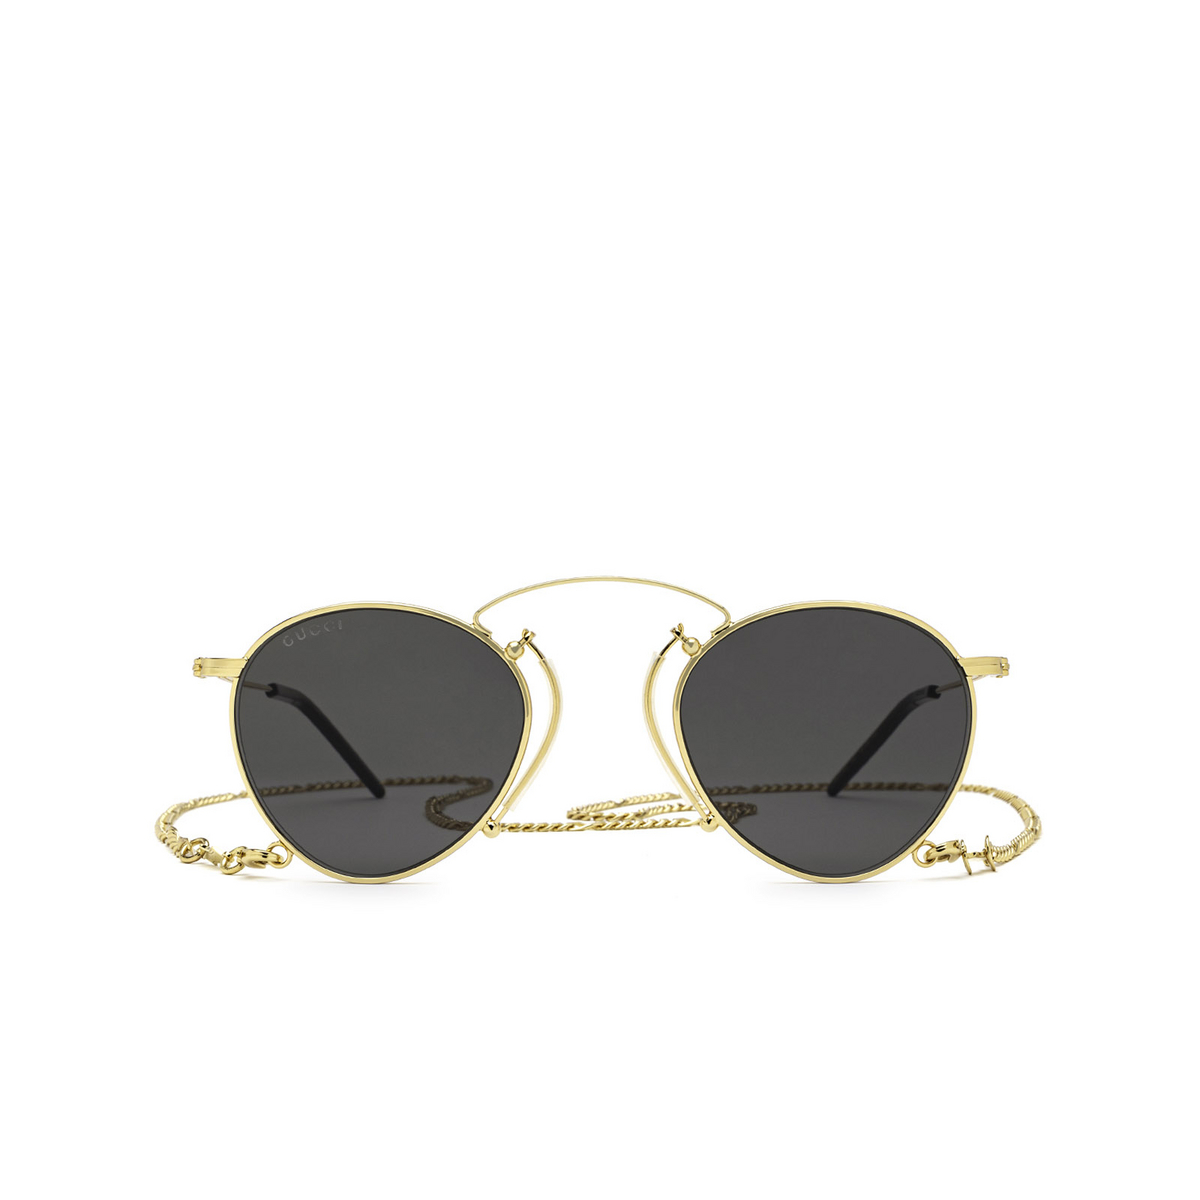 Gucci® Round Sunglasses: GG1034S color Gold 002 - front view.